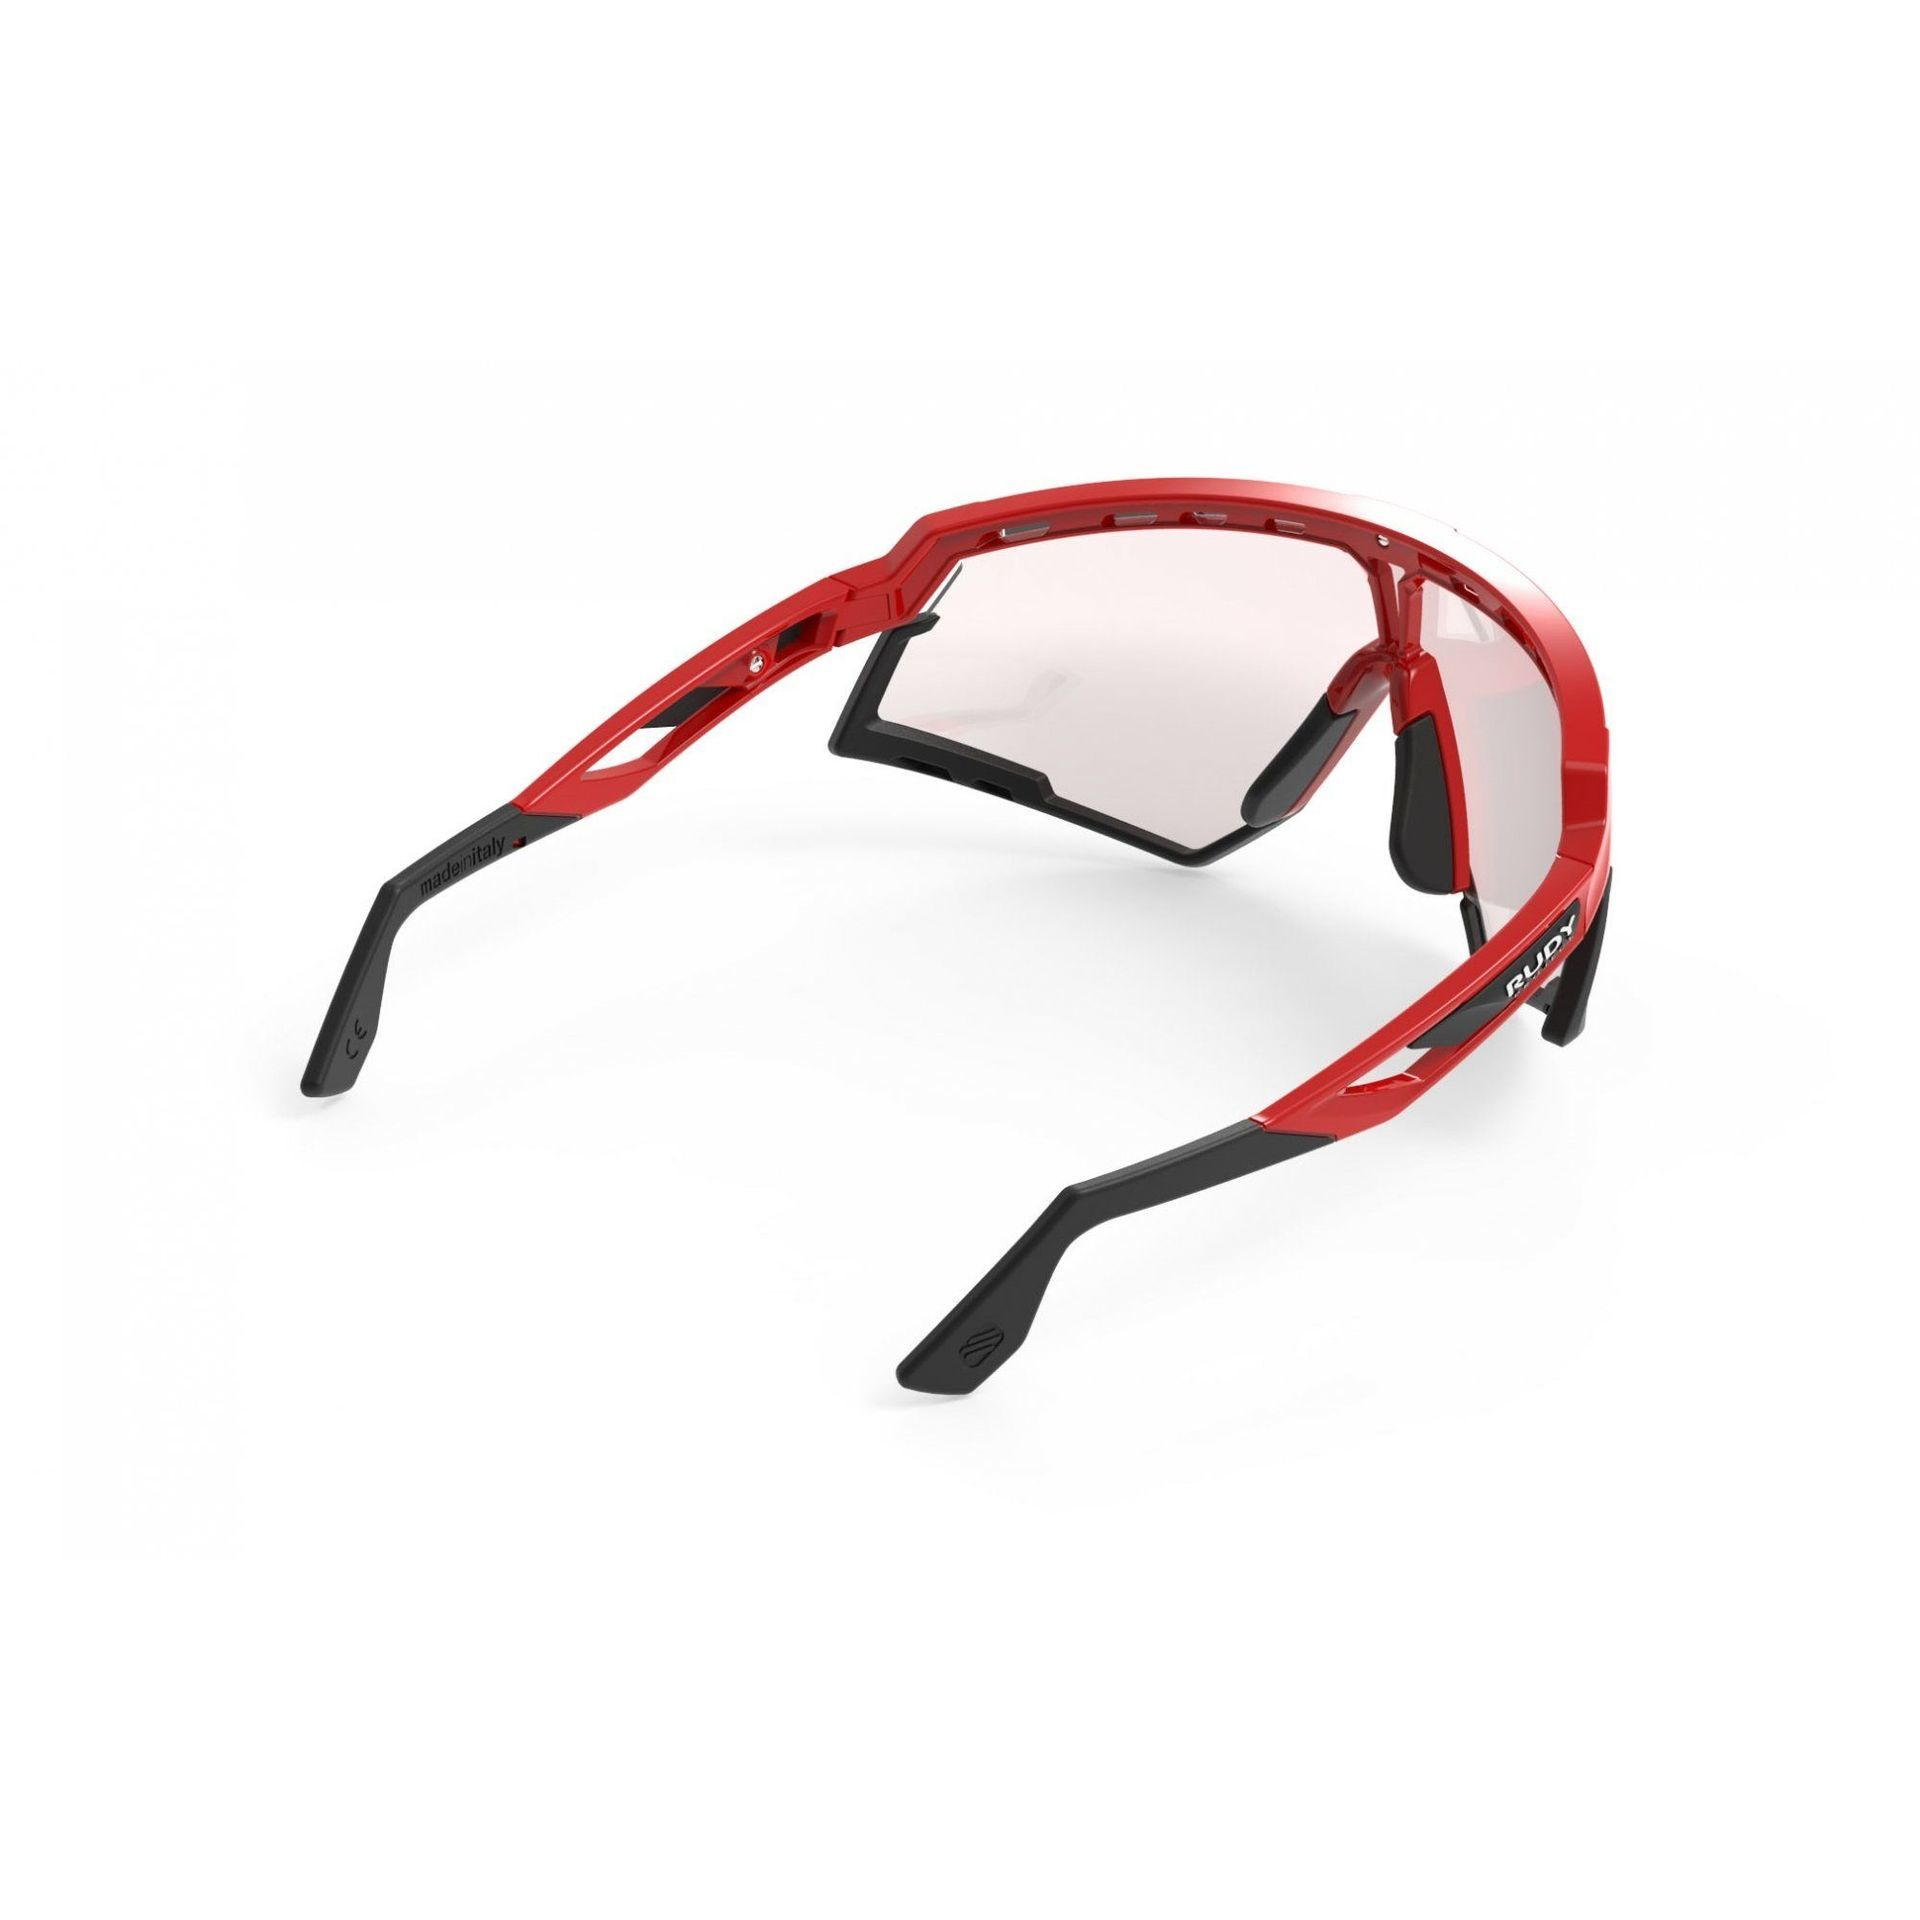 OKULARY RUDY PROJECT DEFENDER FIRE RED BLACK + IMPACTX PHOTOCHROMIC 2LASERRED SP528945 5